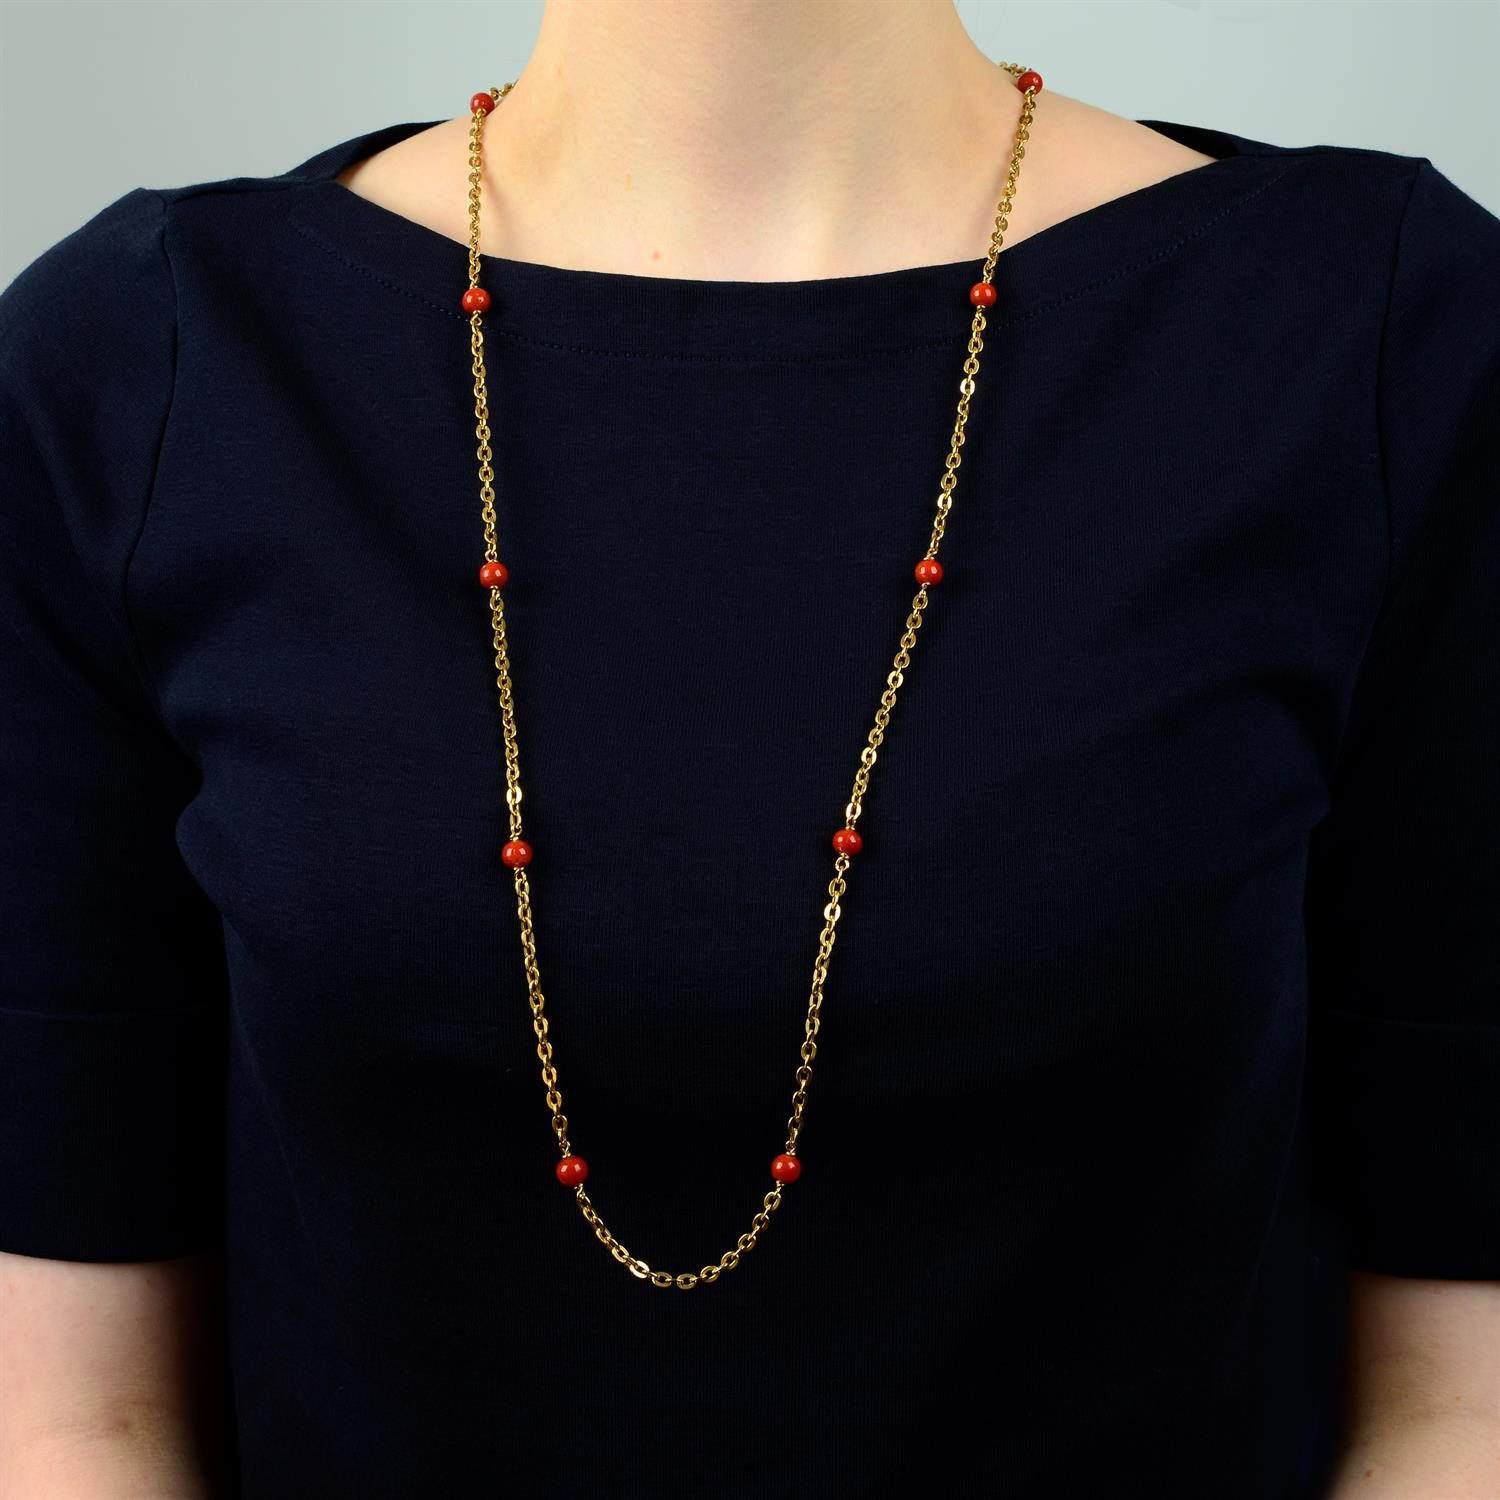 A mid 20th century Italian 18ct gold necklace, with coral bead spacers, by Orf. - Image 5 of 5